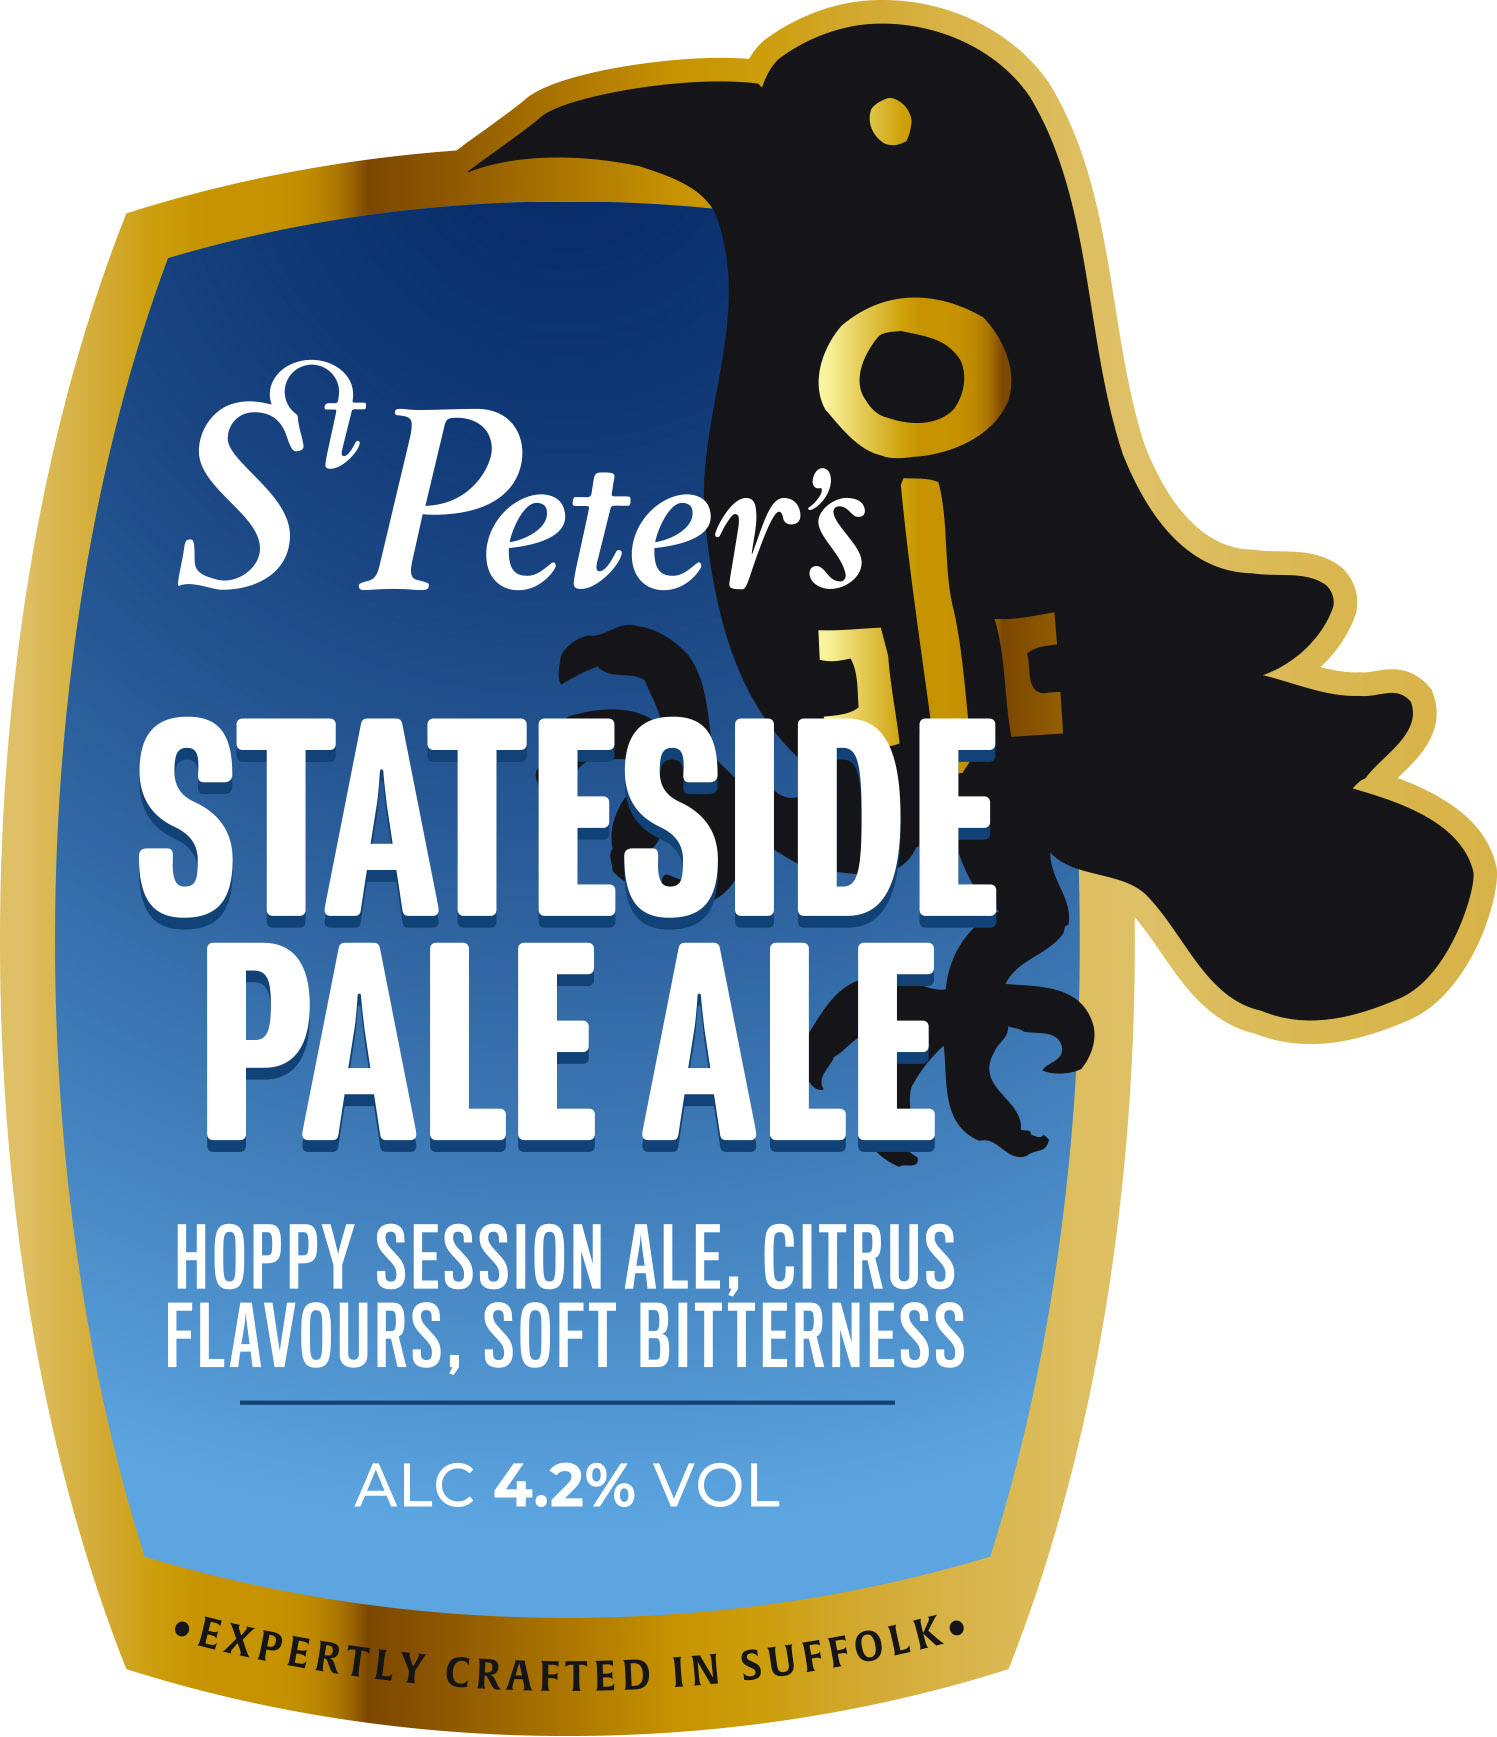 St Peters Stateside Pale 9 Gallons Pale 4.2%